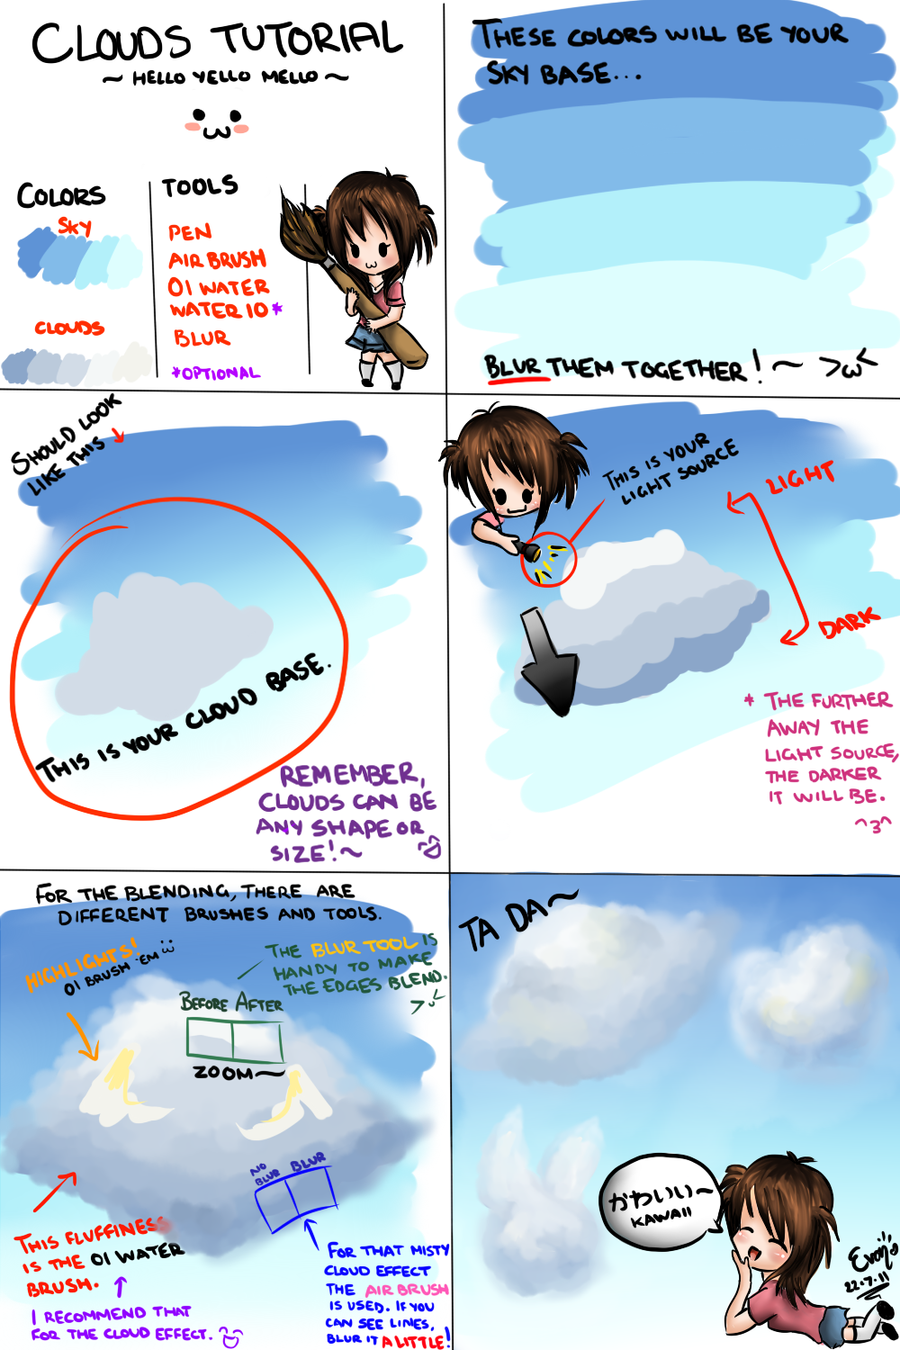 Clouds Tutorial Paint Tool Sai by The-Yello-Mello